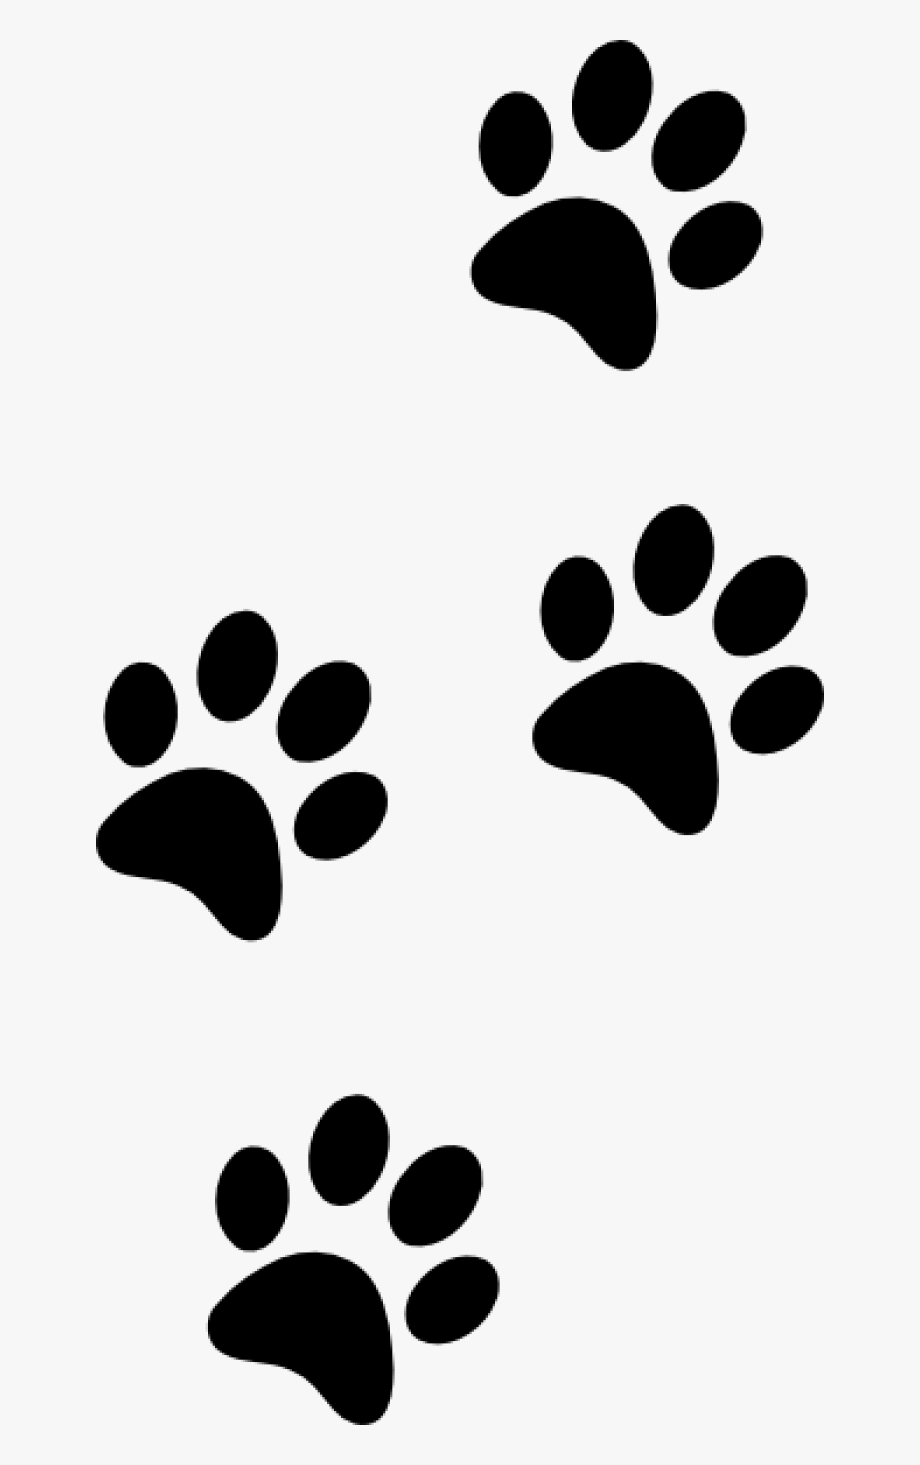 Pawprint clipart small dog. Clip art tiger paw